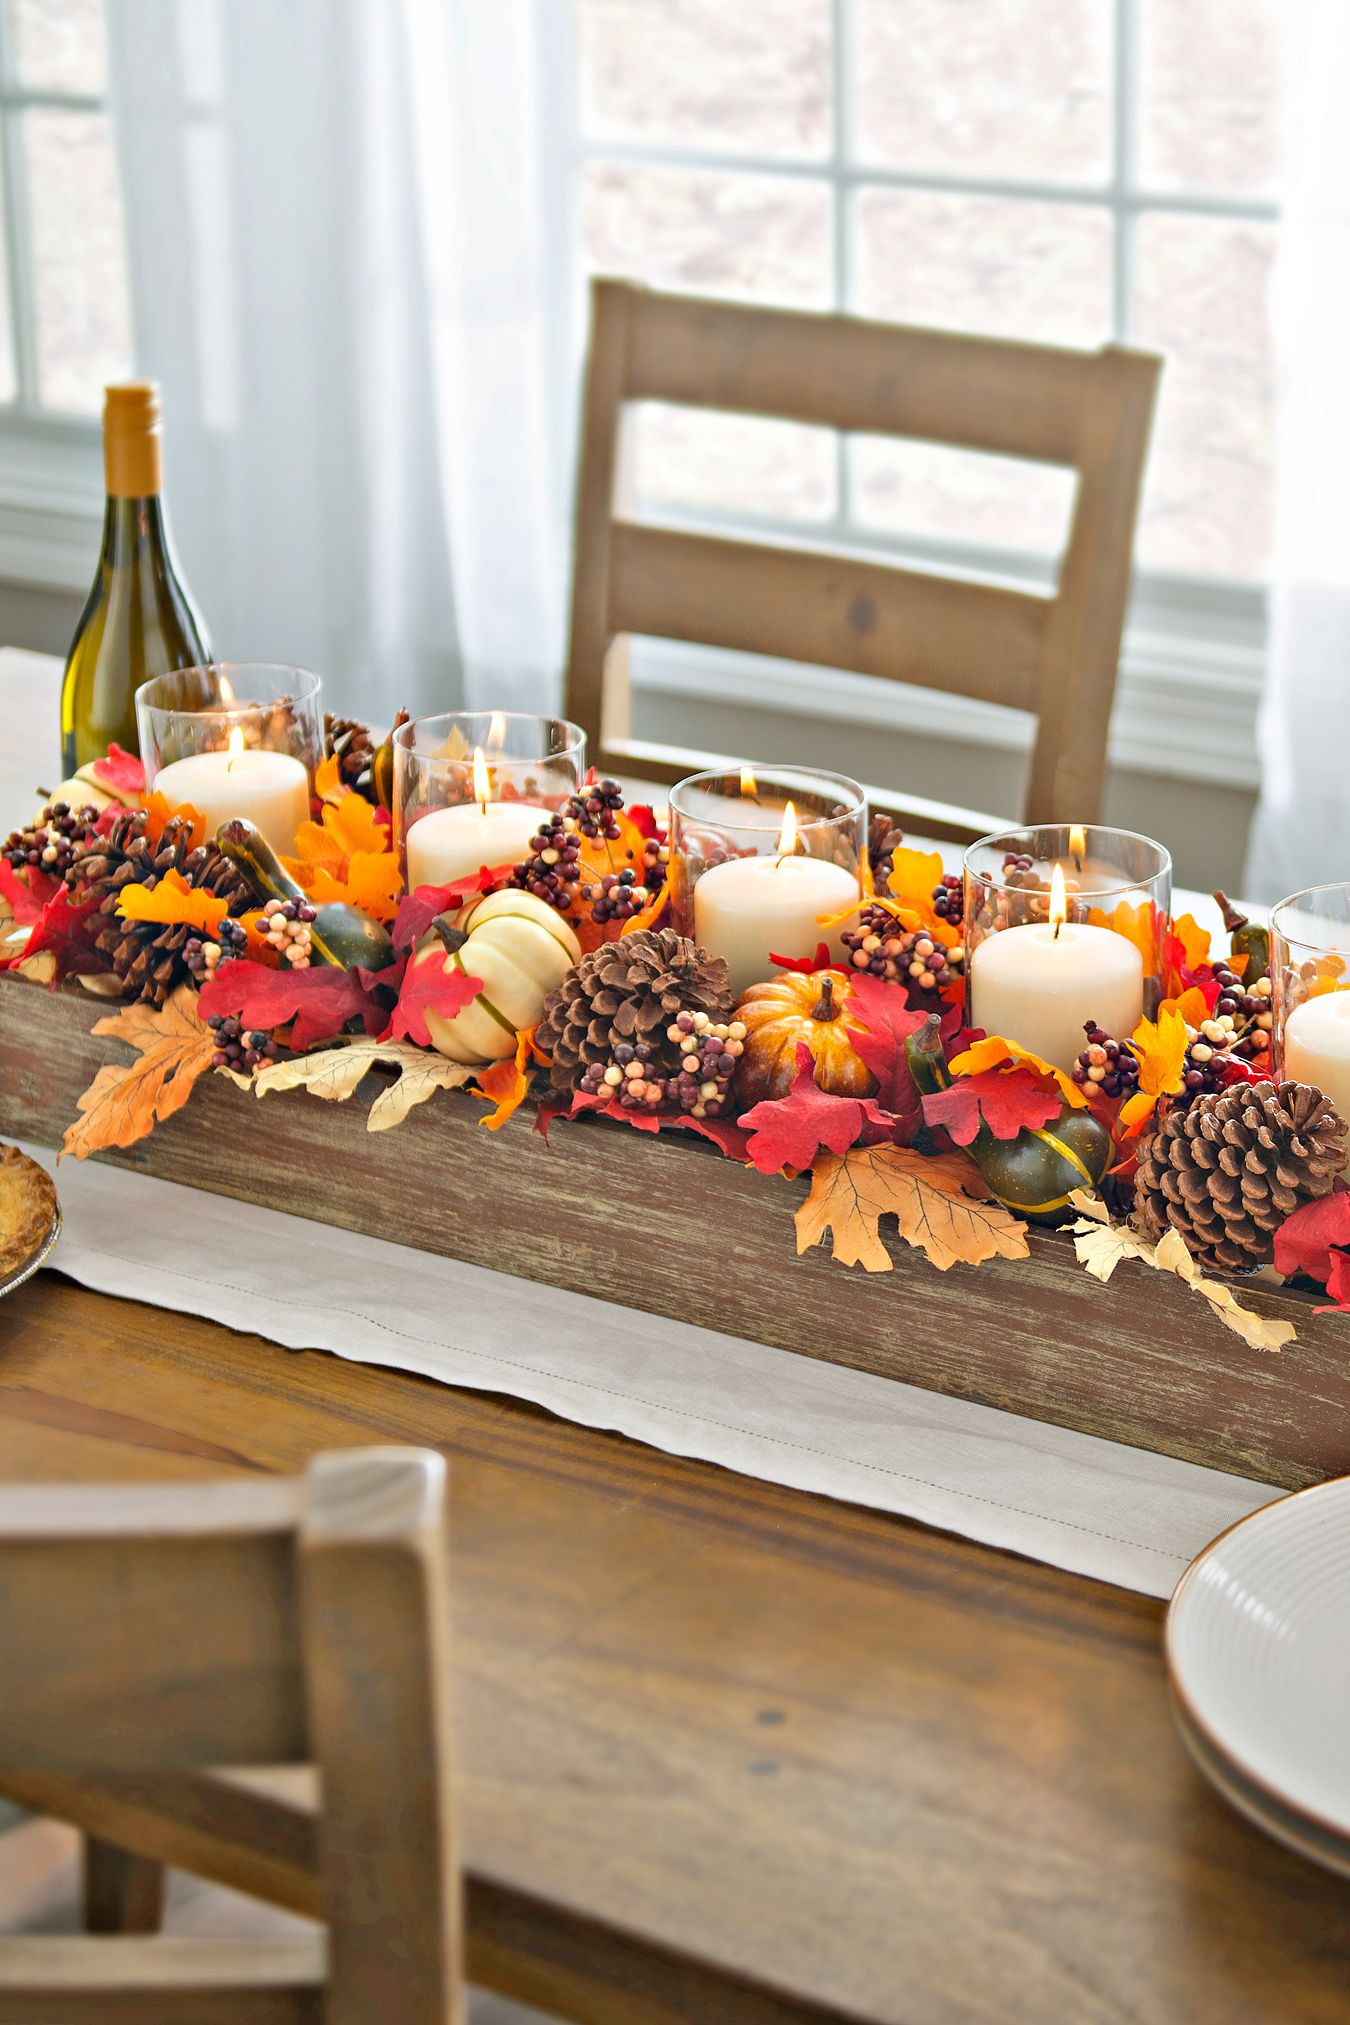 Autumn table centerpiece with pinecones and foliage